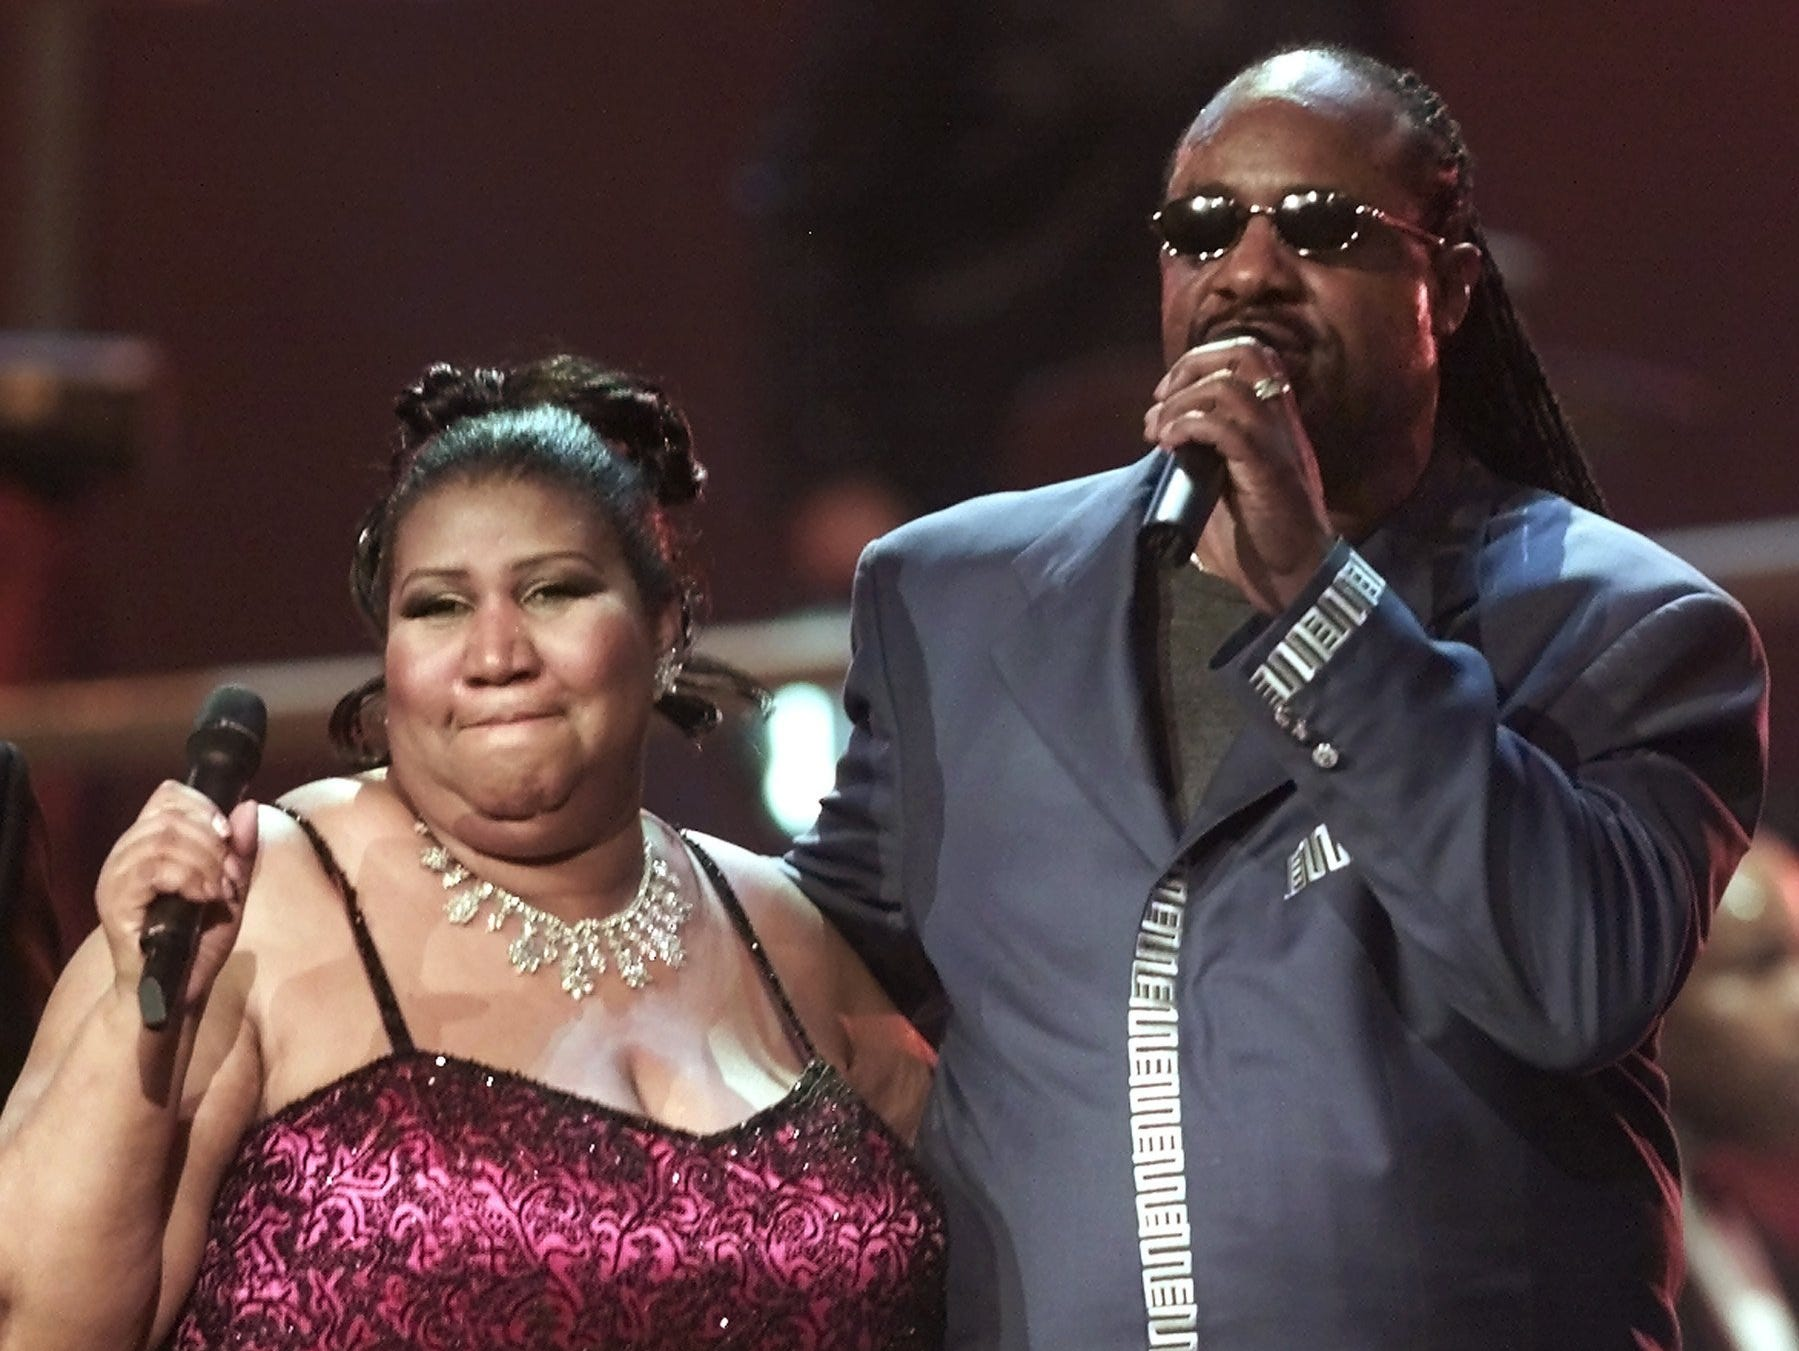 """Aretha Franklin sings with Stevie Wonder at the finale of the """"VH1 Divas 2001: The One and Only Aretha Franklin"""" event Tuesday, April 10, 2001, in New York. The special tribute also featured Mary J. Blige, Jill Scott, Cella Cruz, Marc Anthony and Kid Rock."""